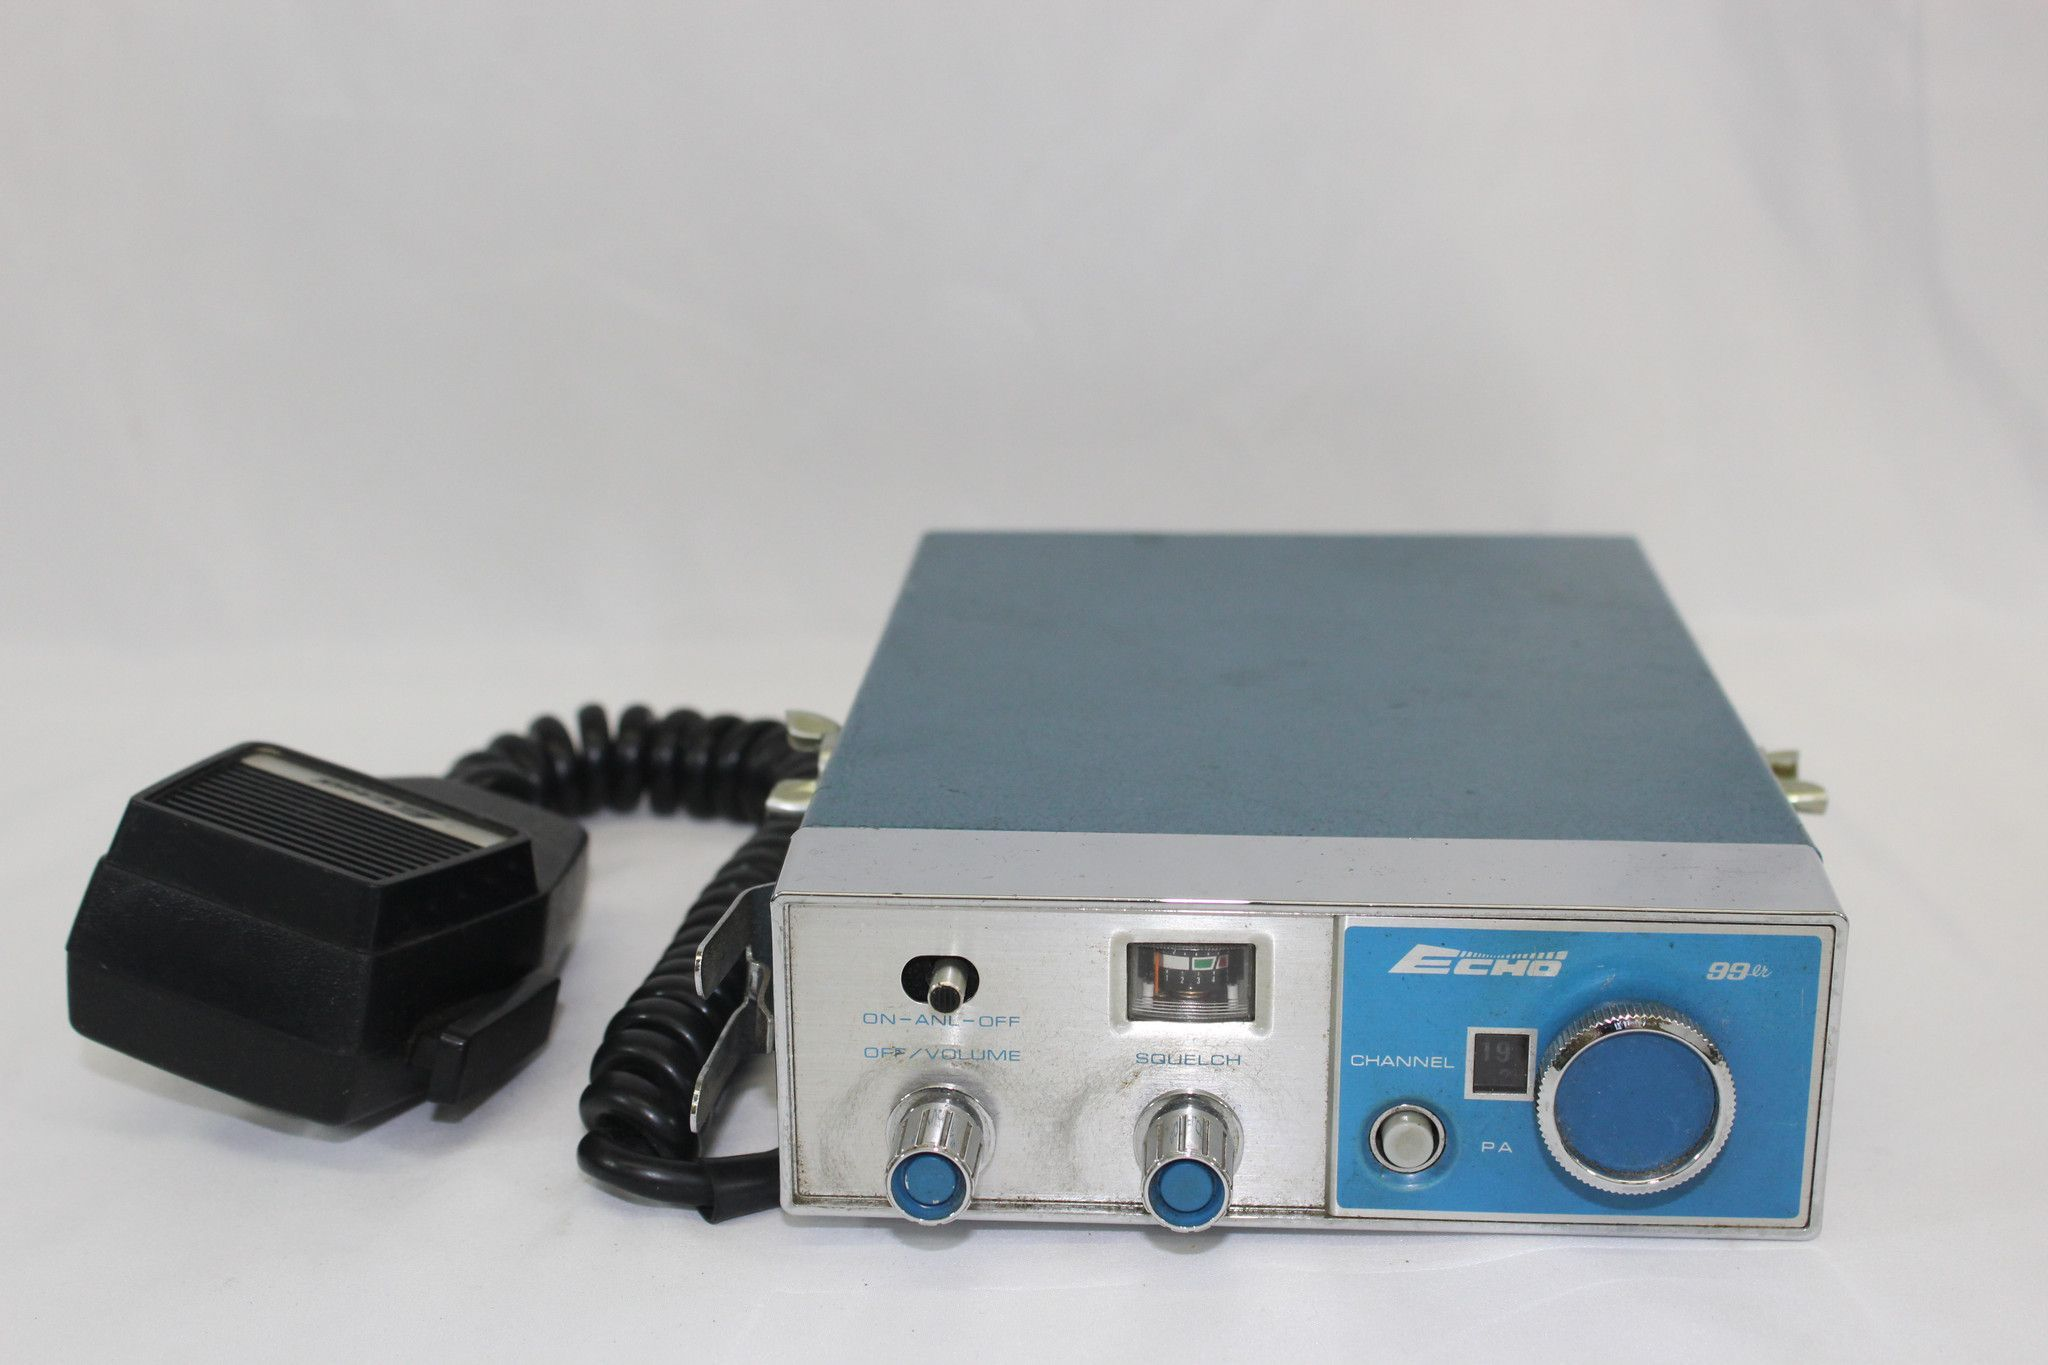 hight resolution of echo 99er cb radio 23 channel citizens band transceiver